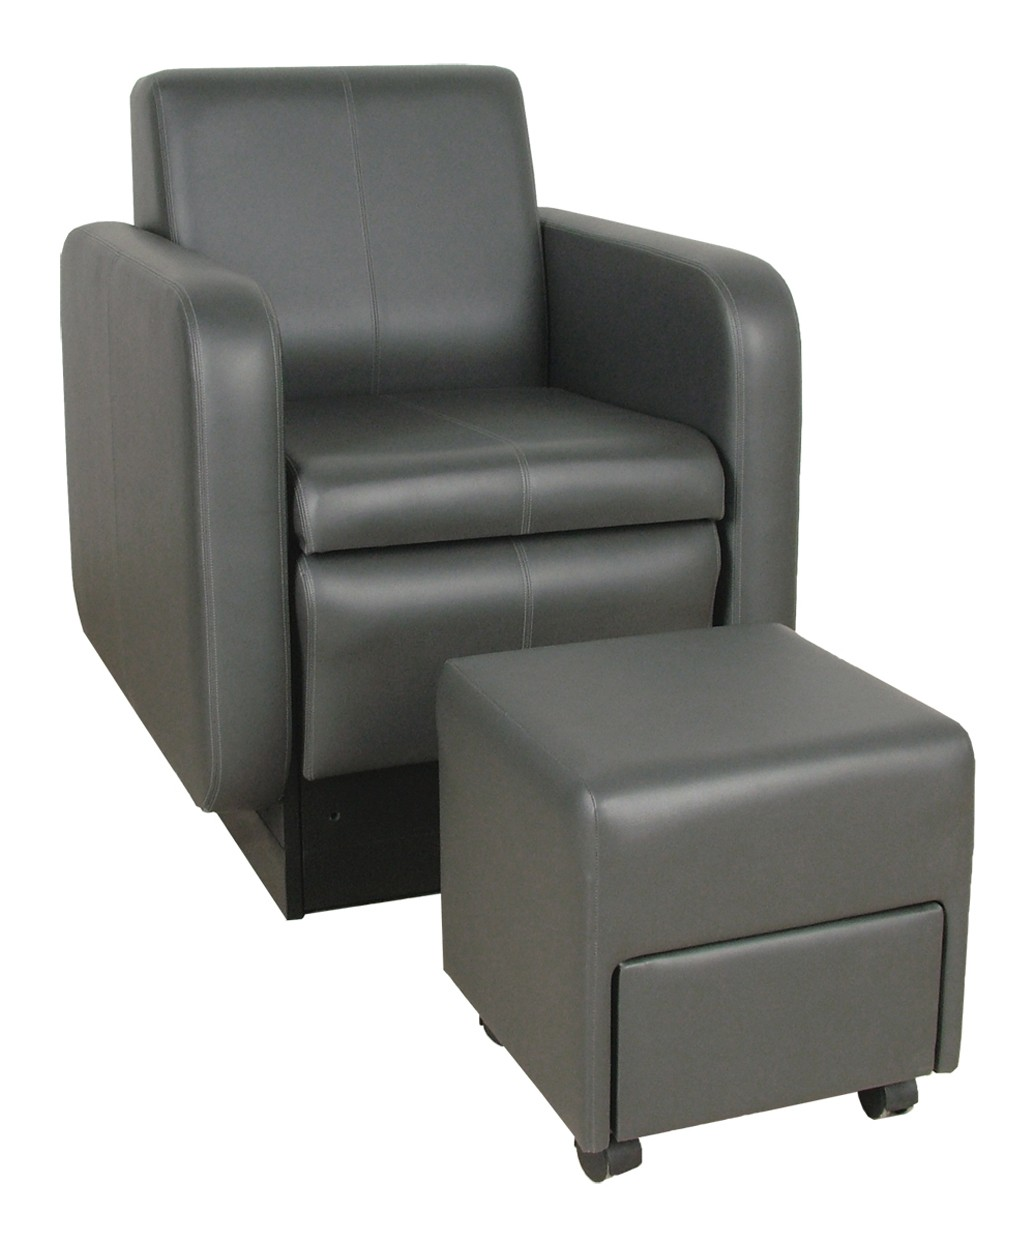 2555 Blush Ckub Pedicure Chair with Footsie Bath